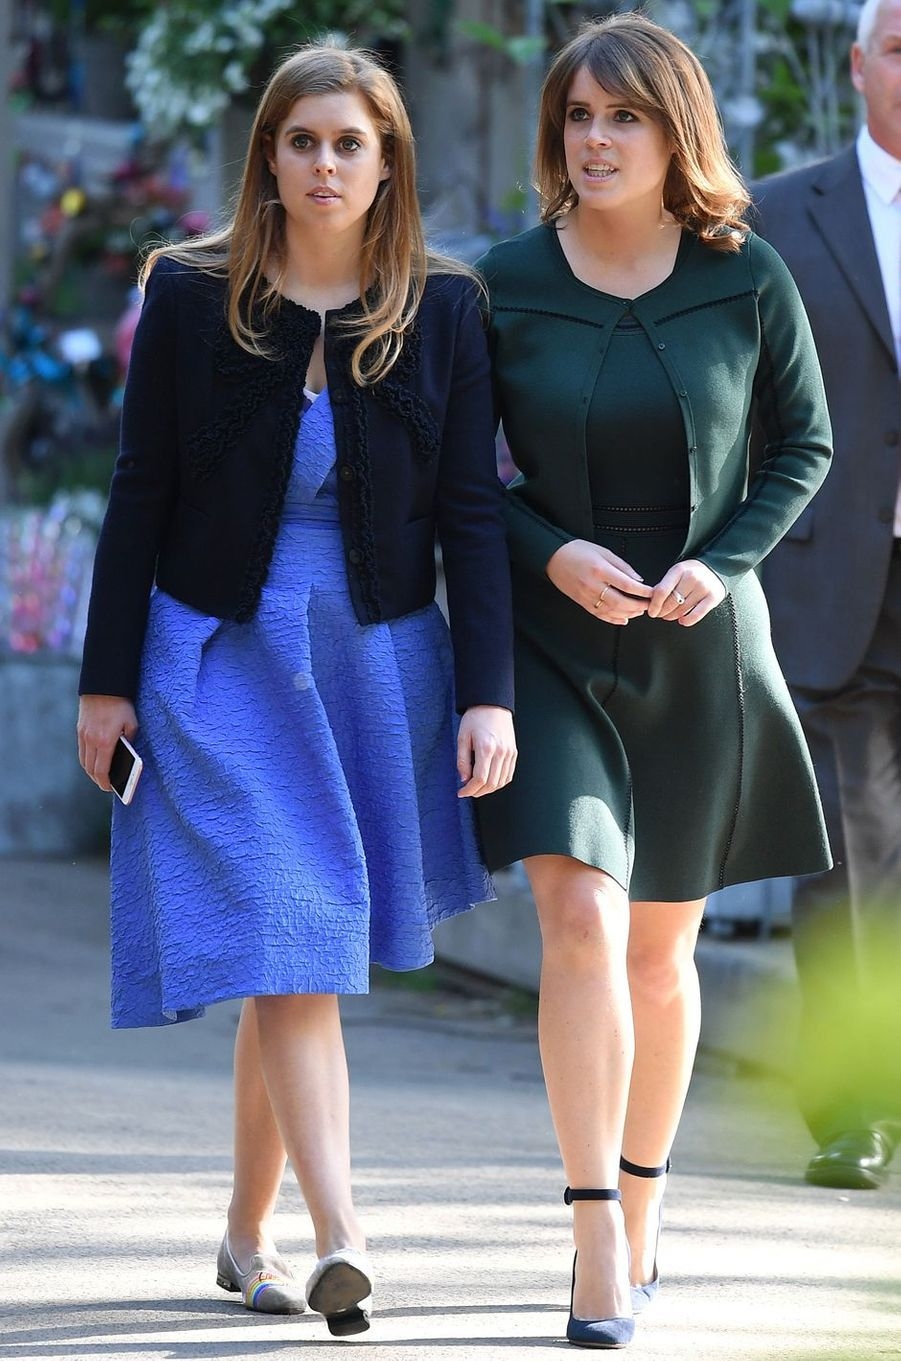 Les princesses Beatrice et Eugenie d'York à Londres, le 22 mai 2017